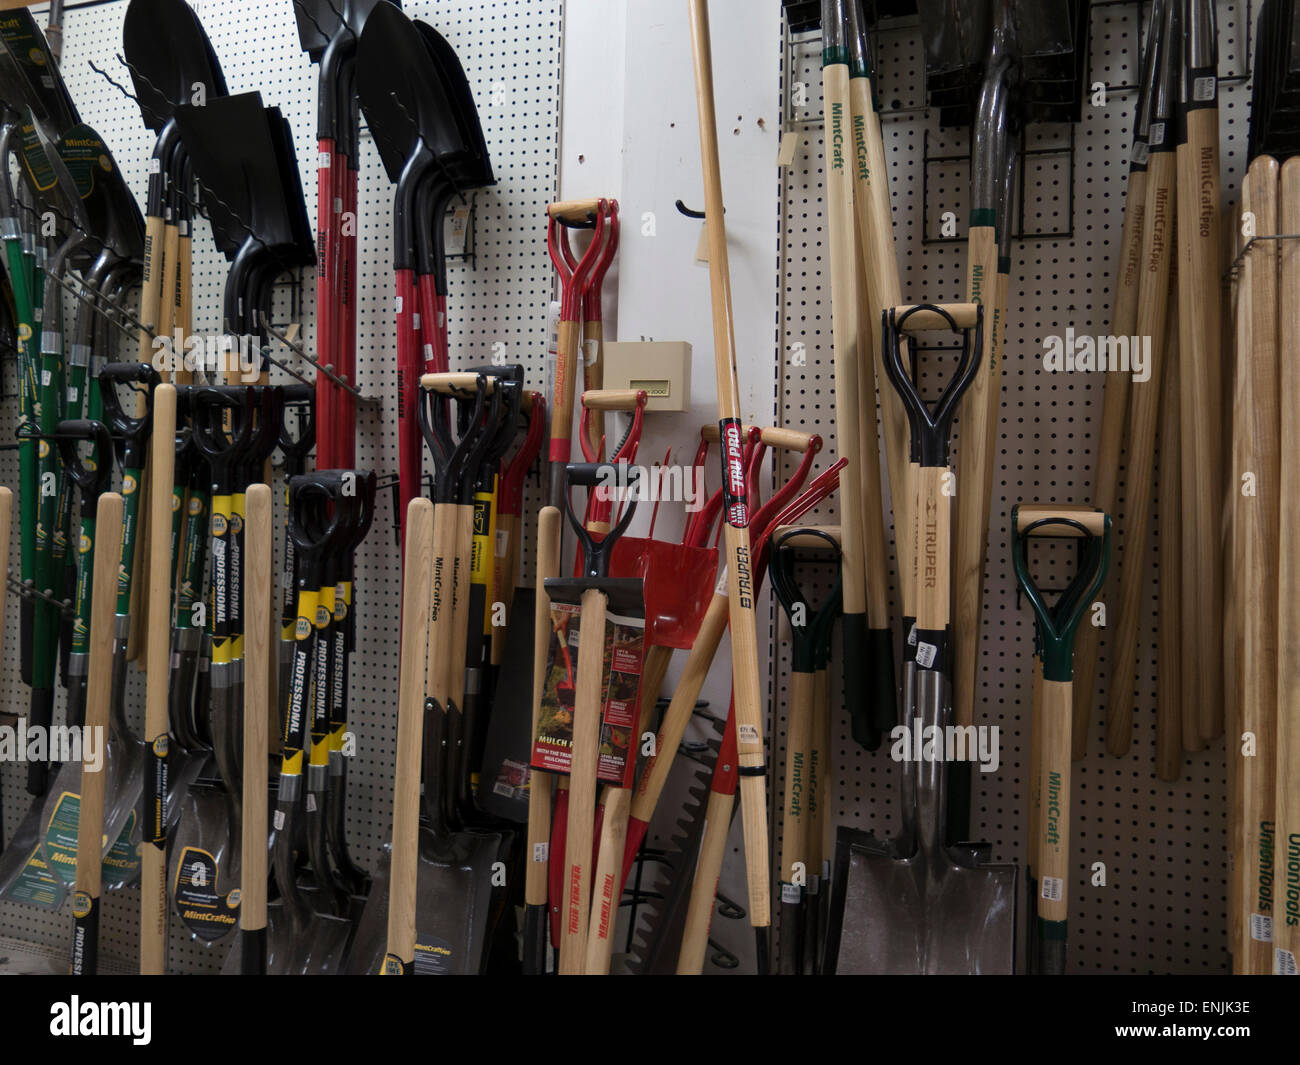 Image result for MINTCRAFT SHOVEL DISPLAY